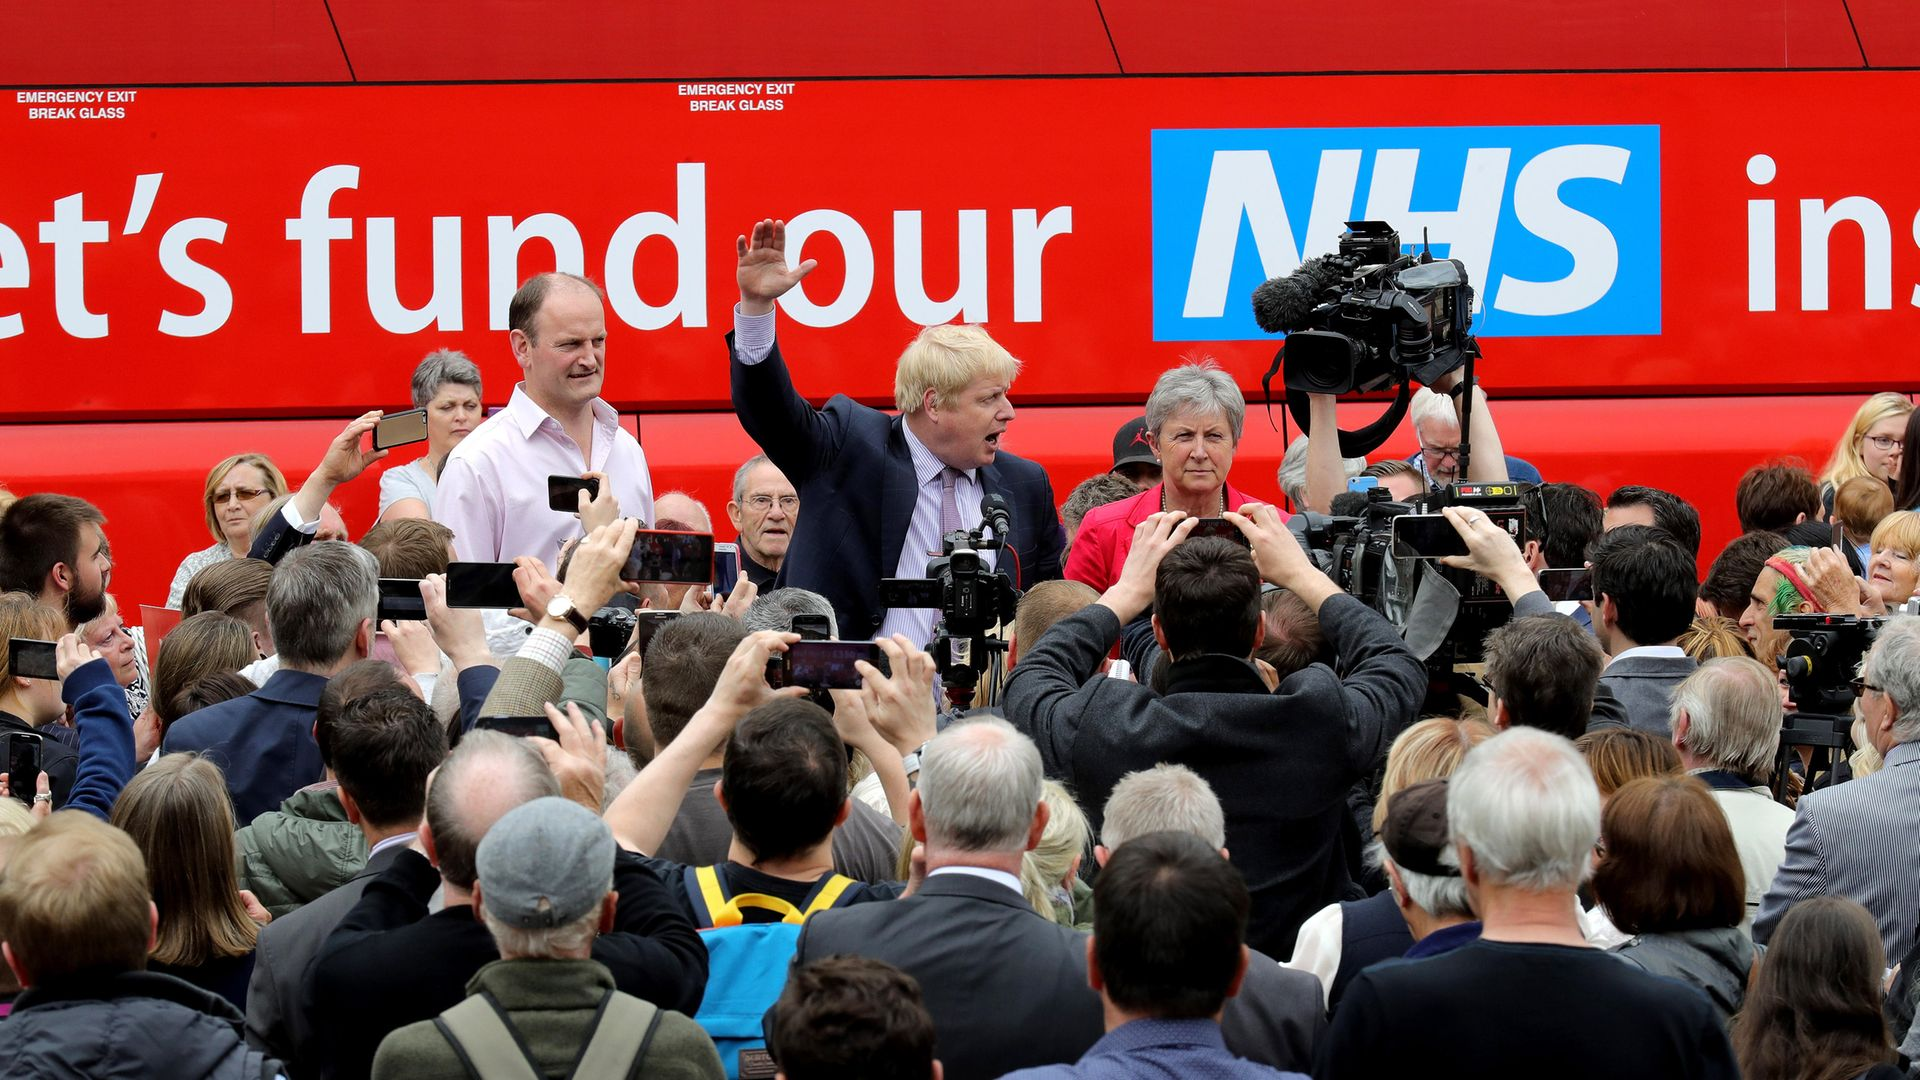 Boris Johnson, Gisela Stuart and Douglas Carswell address the people of Stafford in Market Square during the Vote Leave, Brexit Battle Bus tour on May 2016 - Credit: Getty Images